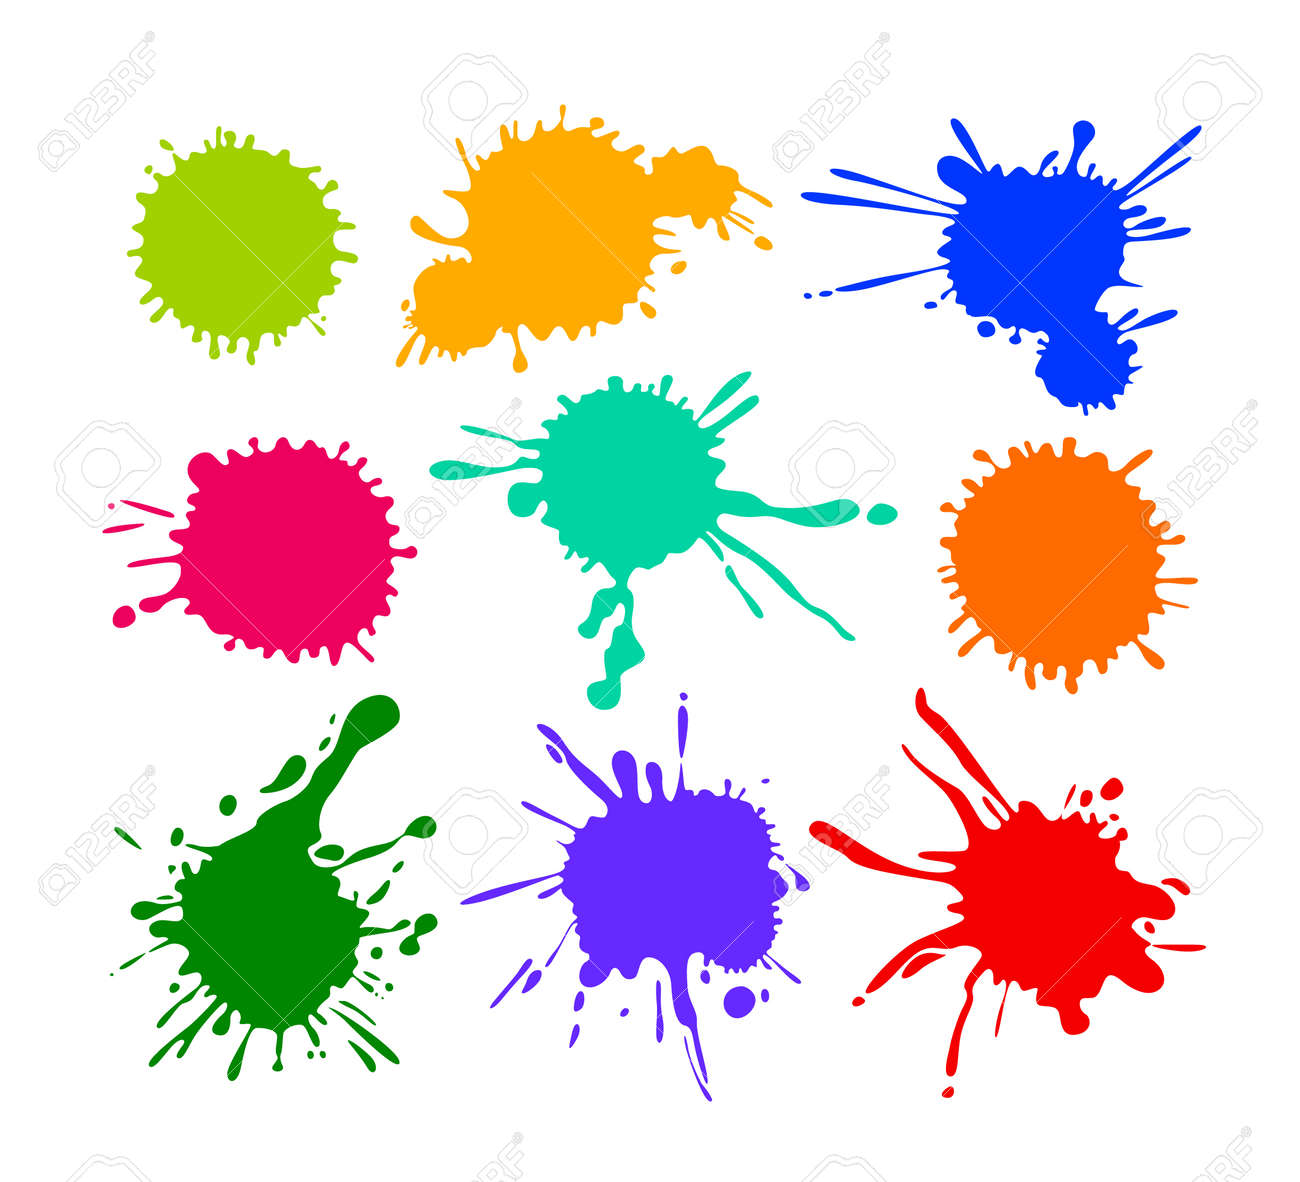 Set of Cartoon Blots and Splatters, Multicolored Blob Icons Isolated on White Background. Bright Paint Brush Yellow Red Blue and Green Colors. Colorful Design Elements, Splashes. Vector Illustration - 142780725